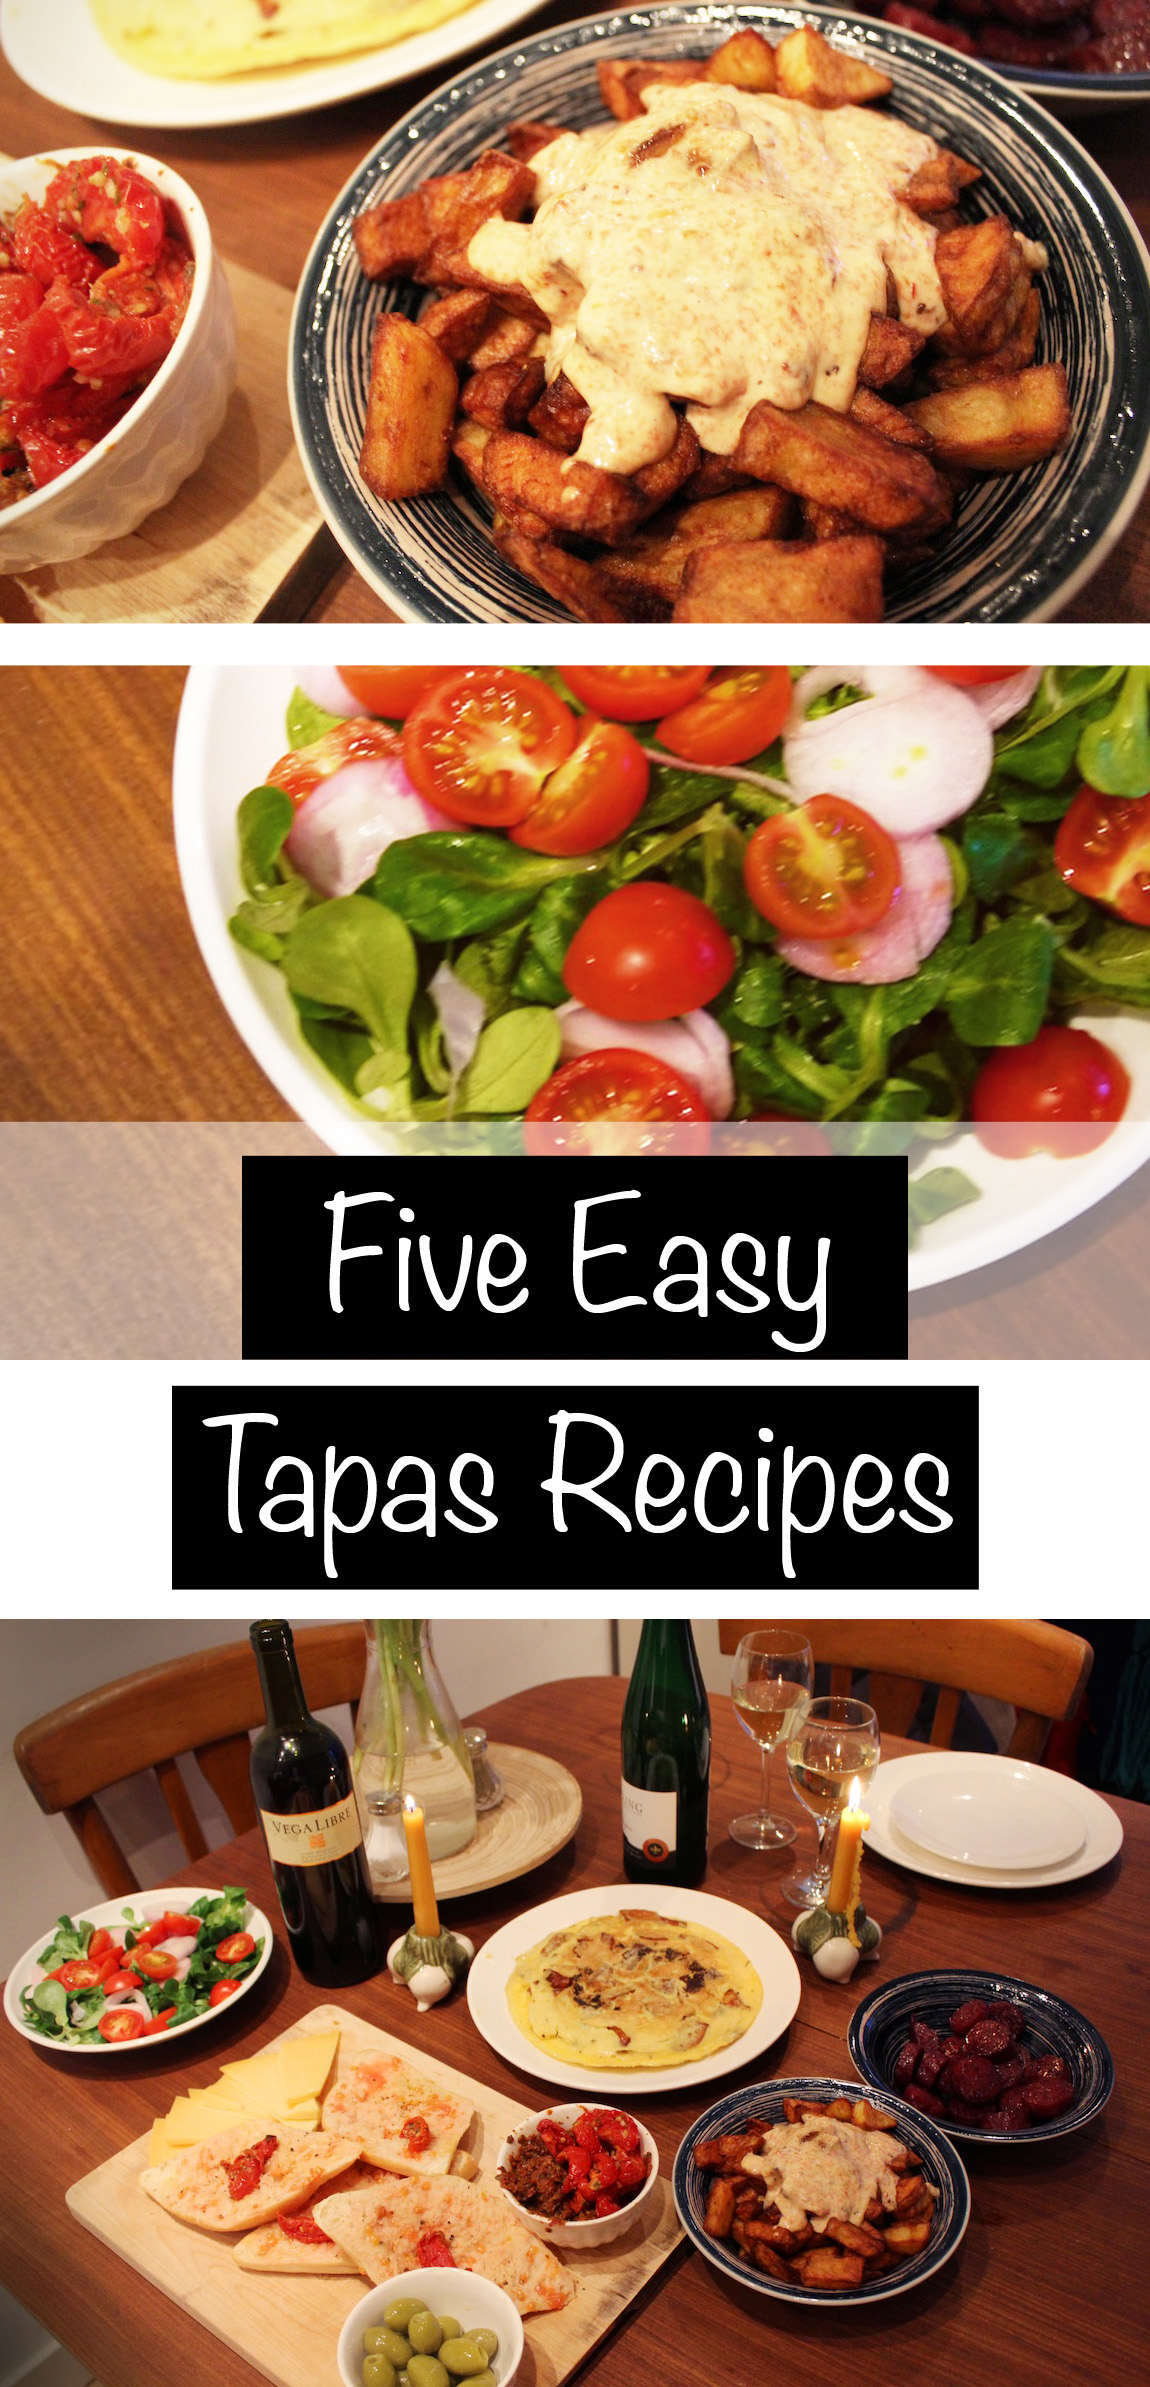 Tapas Recipes Food Network